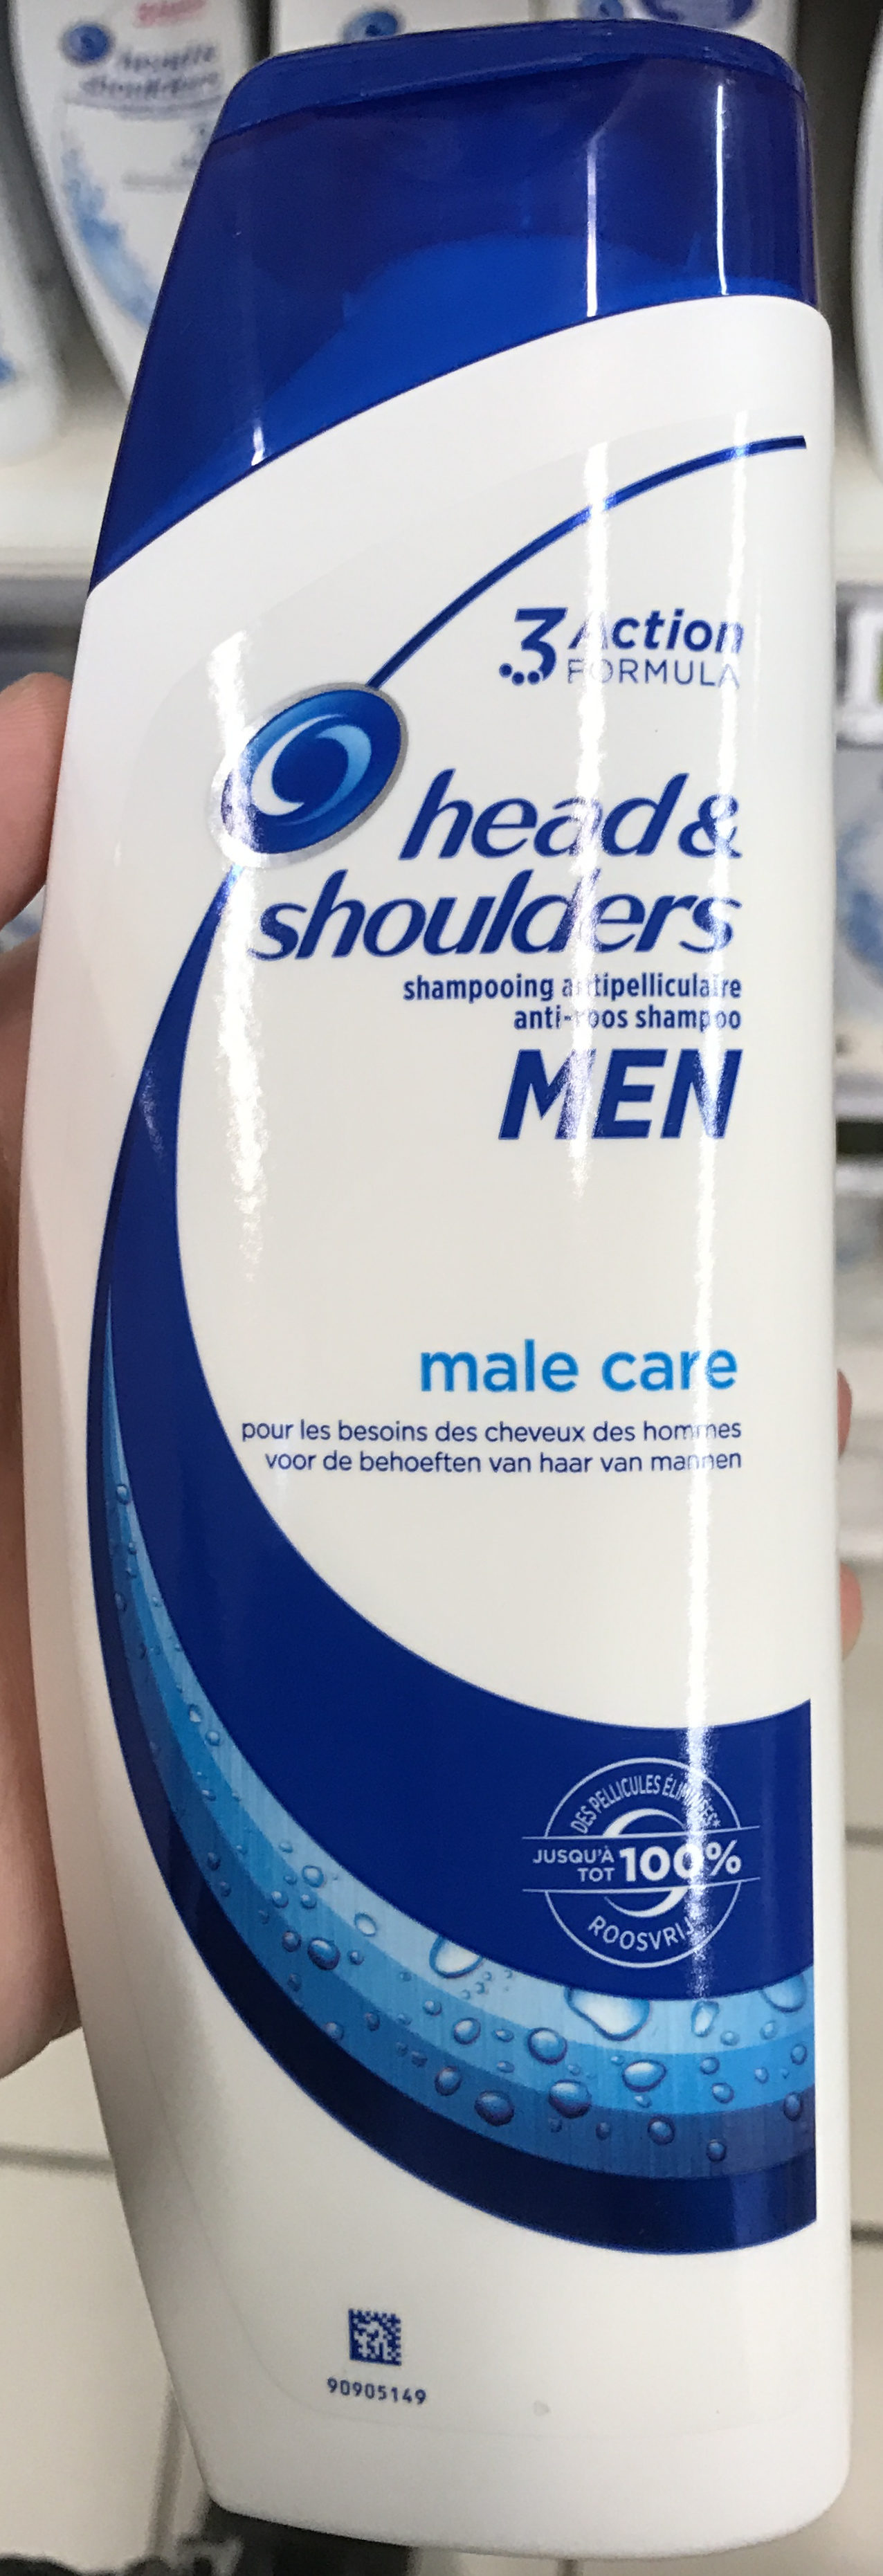 Men Male Care - Product